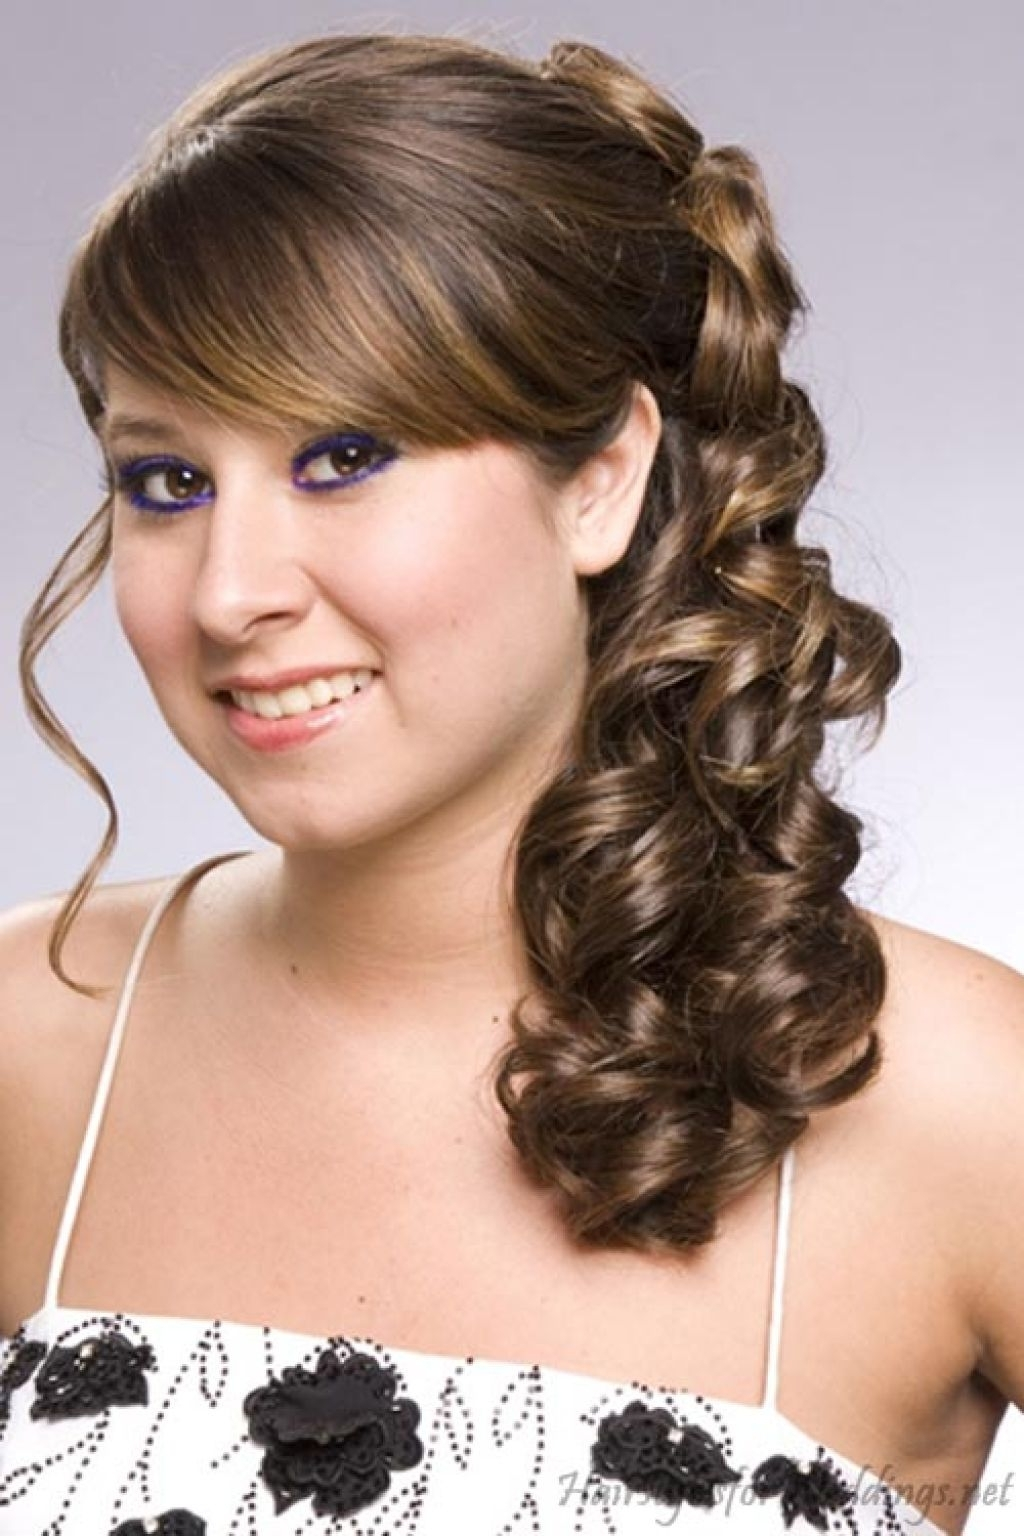 Women Hairstyle Prom Hairstyles Curly Down And Cute Formal Hair For With Regard To Popular Wedding Hairstyles For Short Length Hair Down (View 12 of 15)